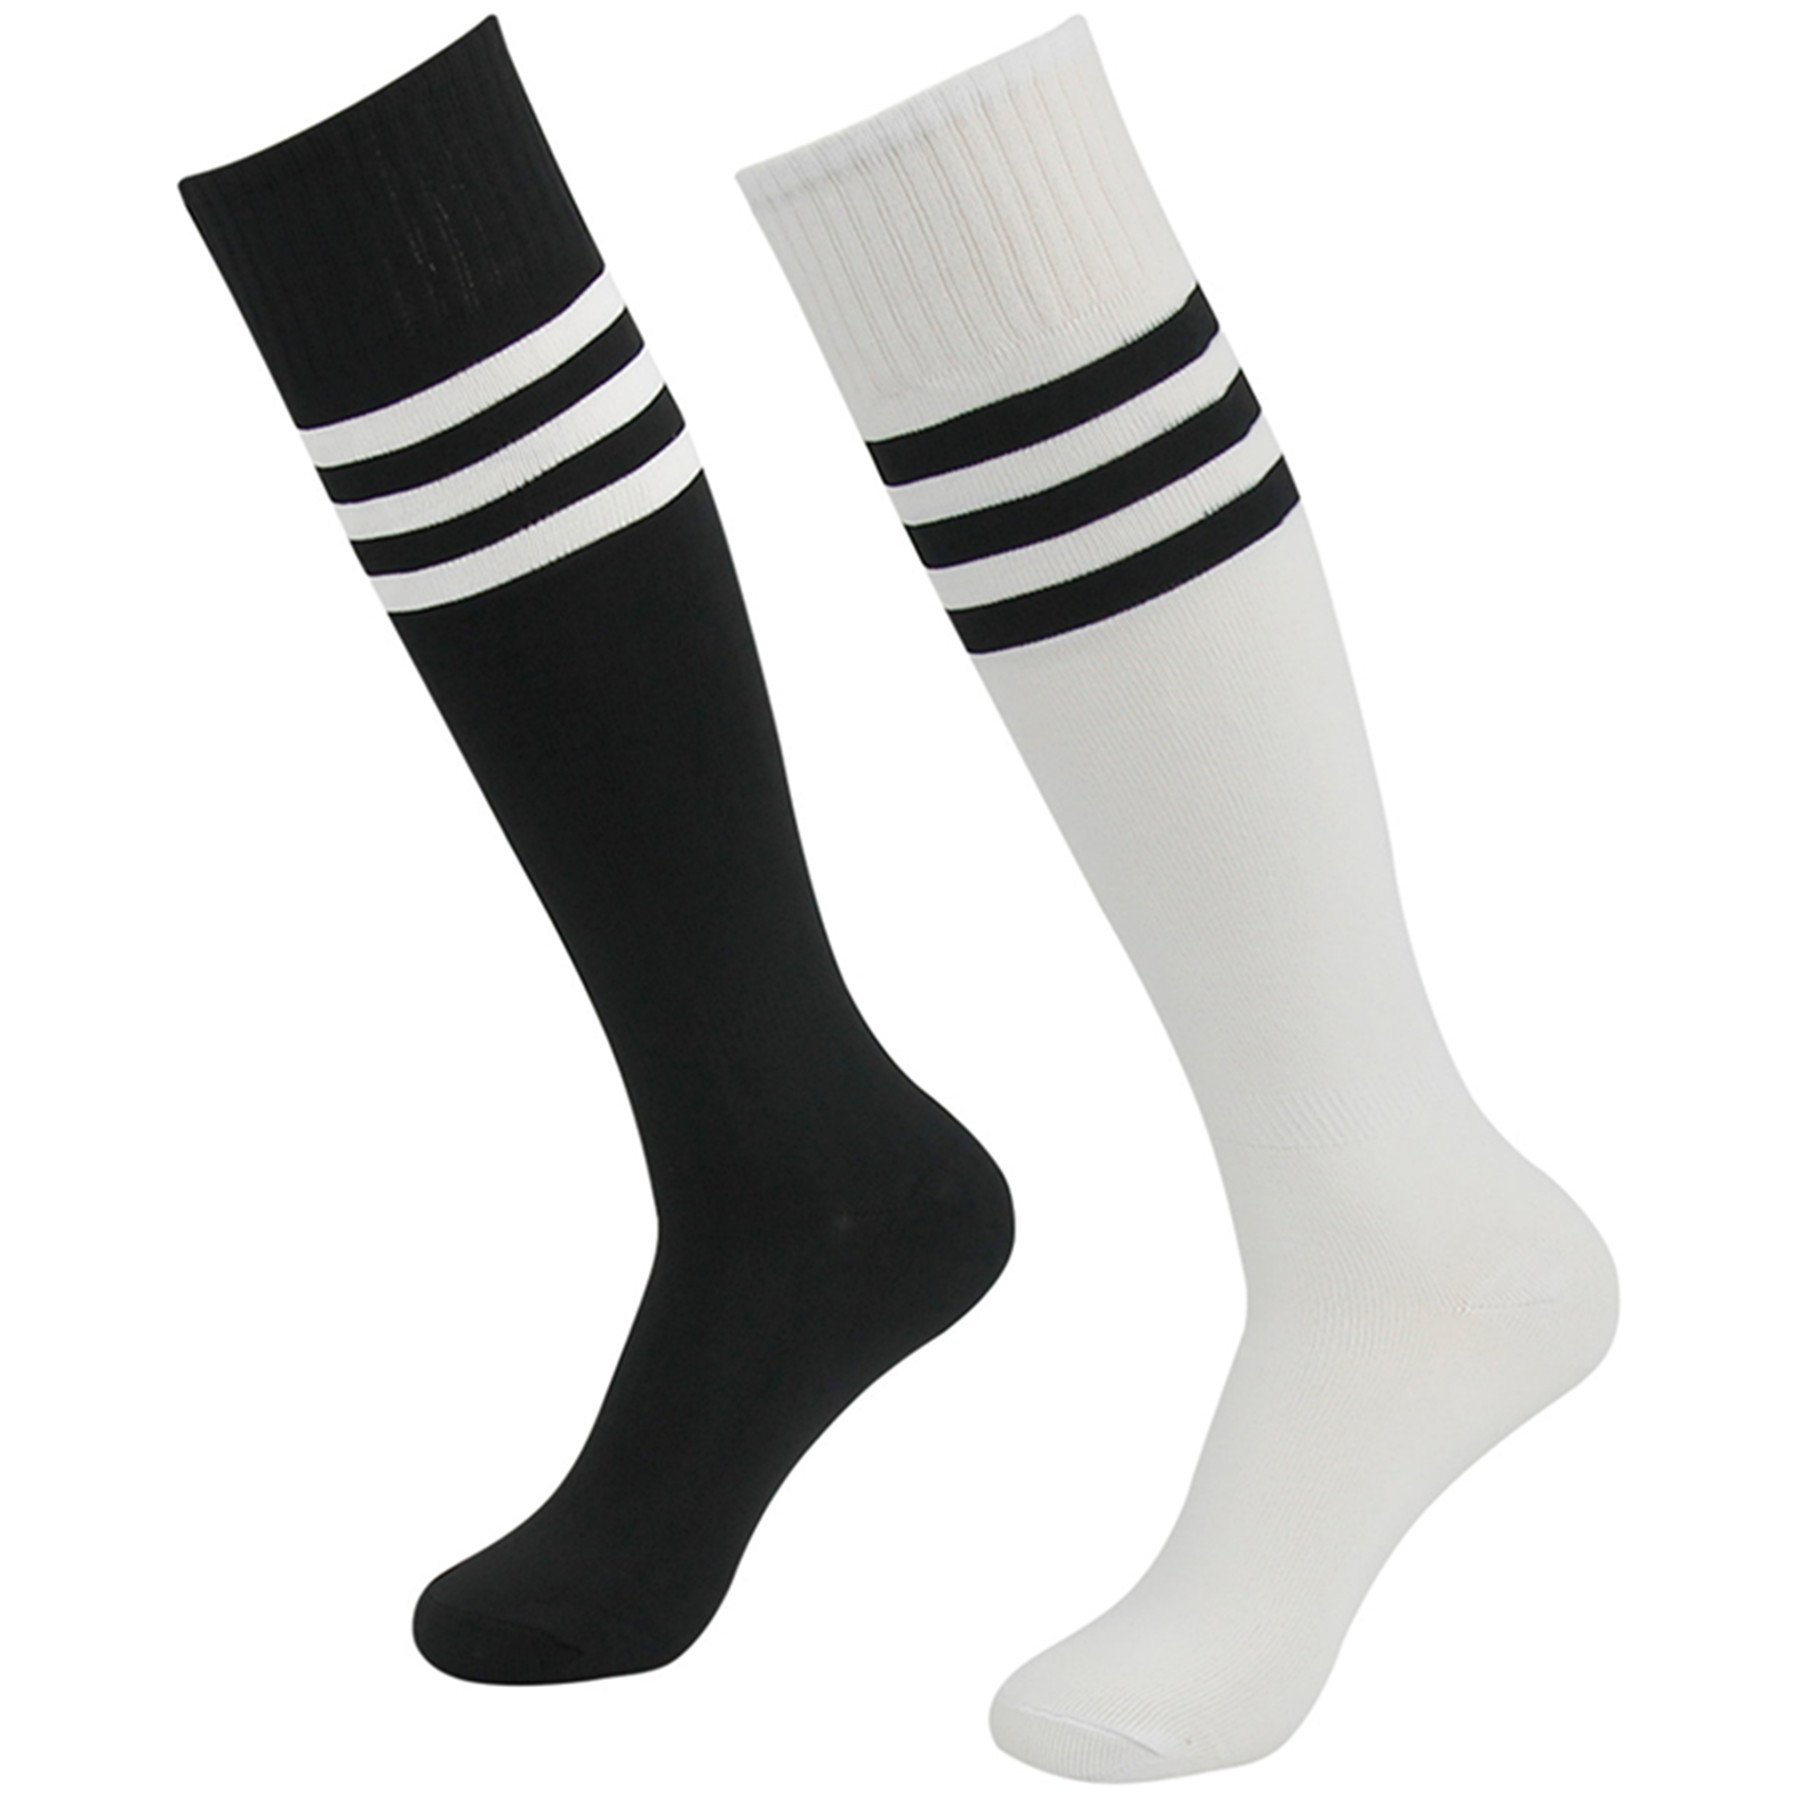 3street Football Soccer Socks, Unisex Ladies Referee Thick Comfort Knee High Tube Stripe Sport Football Compression Socks Black White 2-Pairs by Three street